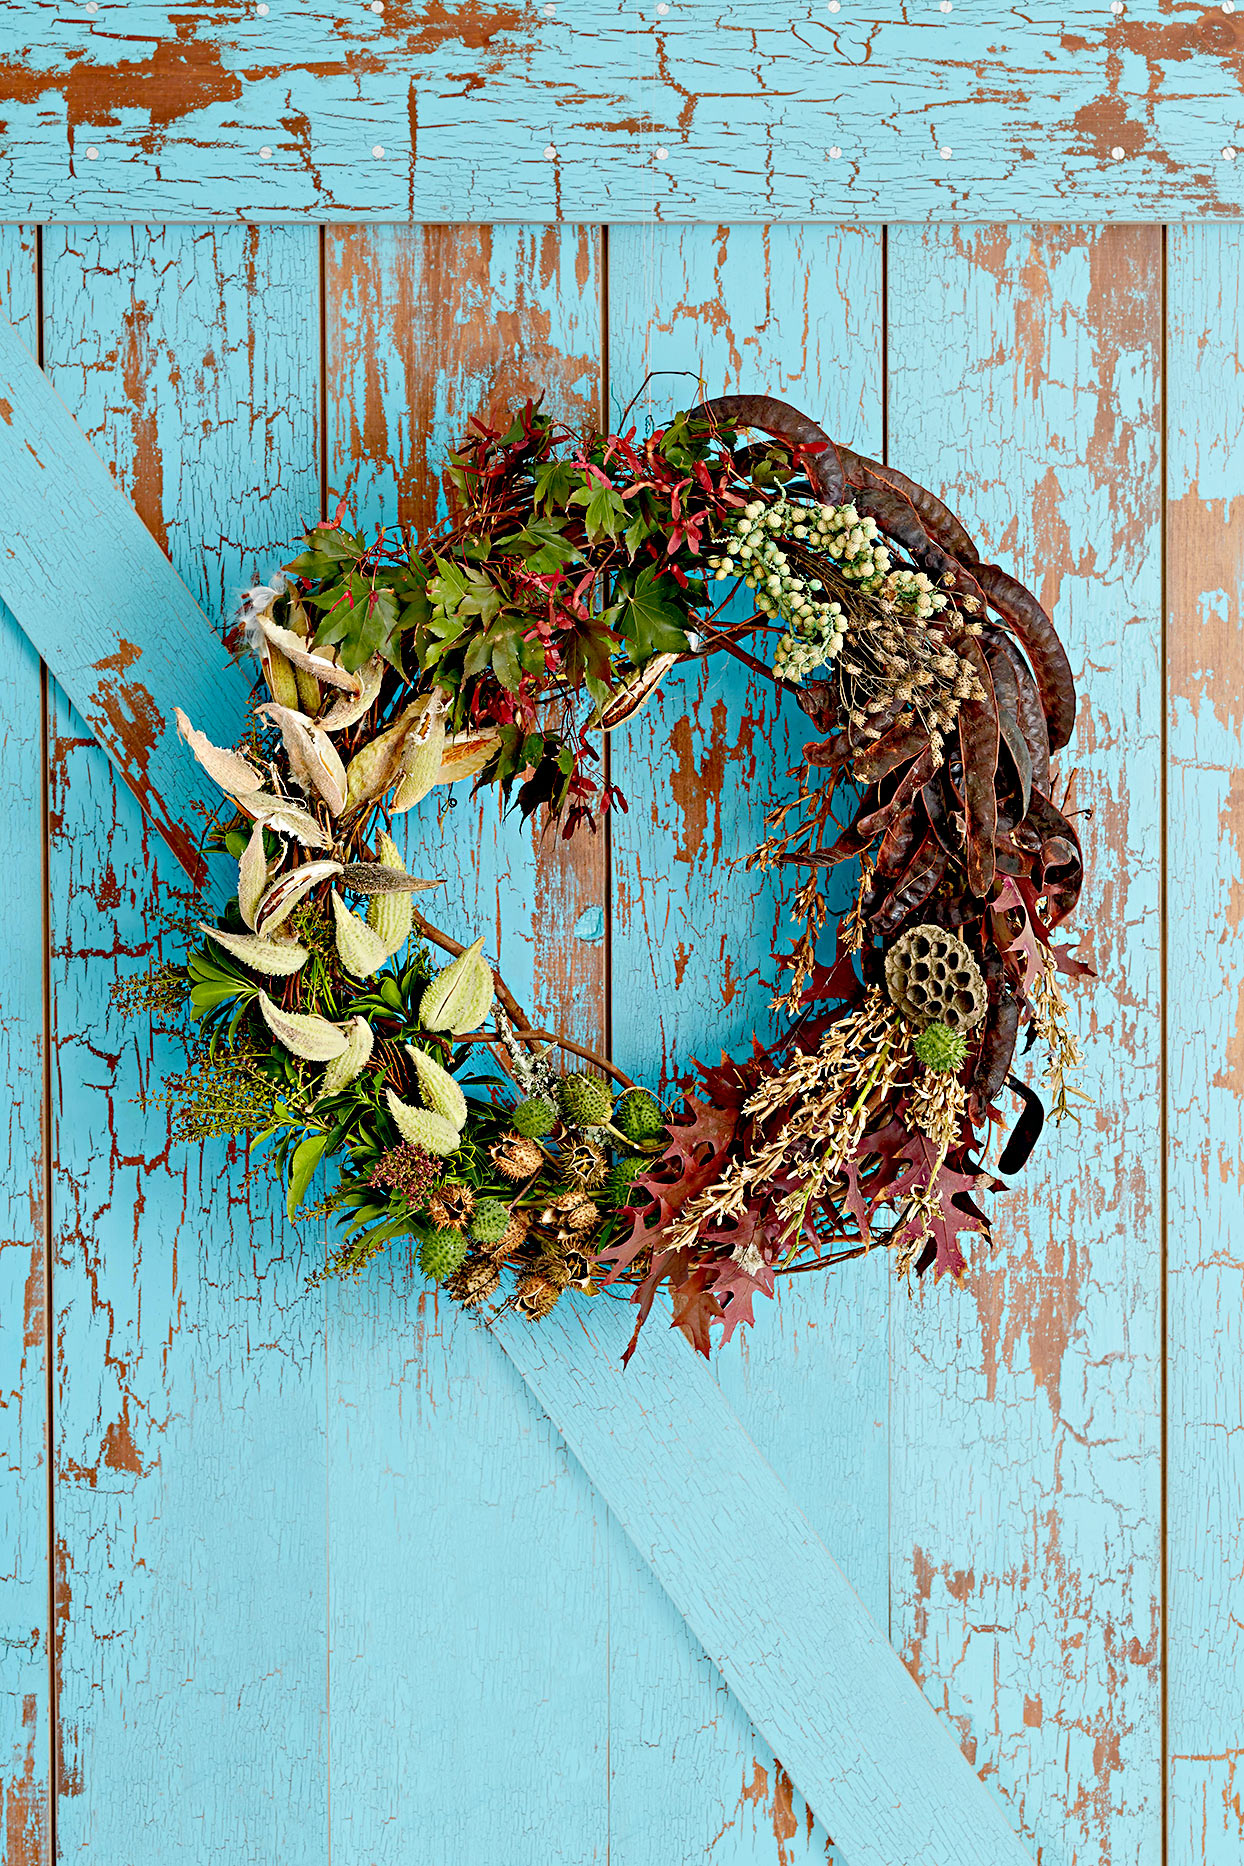 Wreath made of leaves, seed pods, and plants